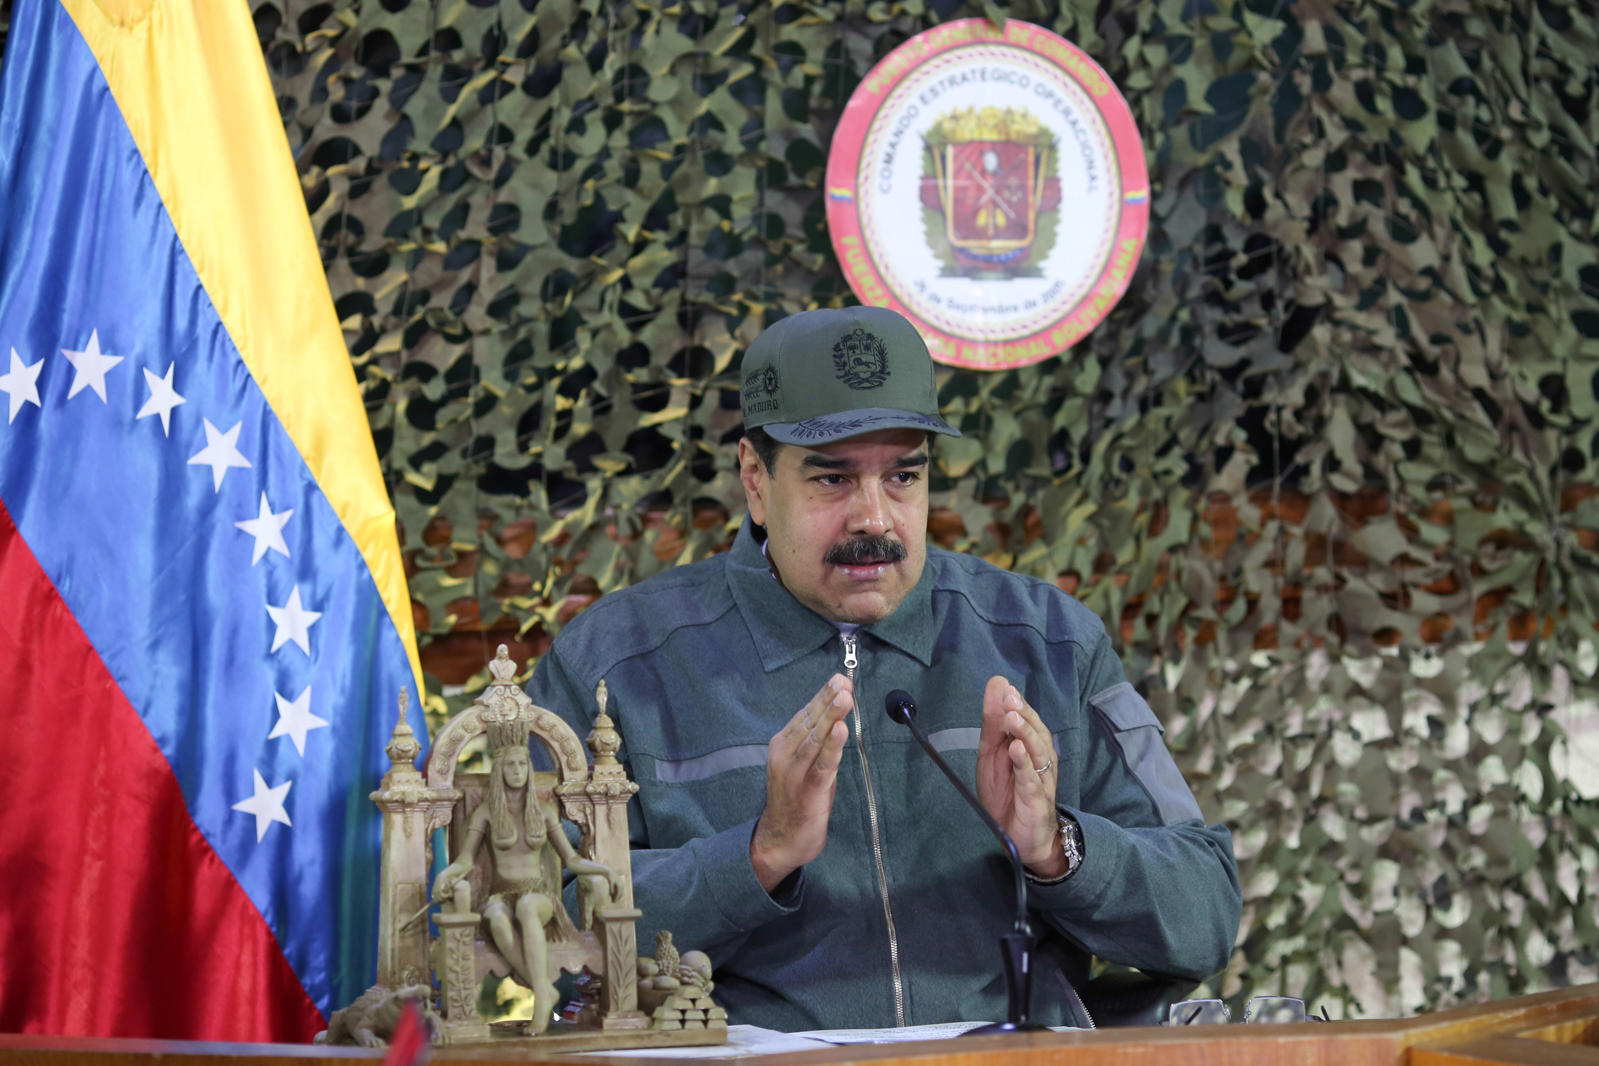 Venezuela's President Nicolas Maduro speaks during a meeting with military high command members in Caracas, Venezuela January 15, 2019. Miraflores Palace/Handout via REUTERS ATTENTION EDITORS - THIS PICTURE WAS PROVIDED BY A THIRD PARTY.